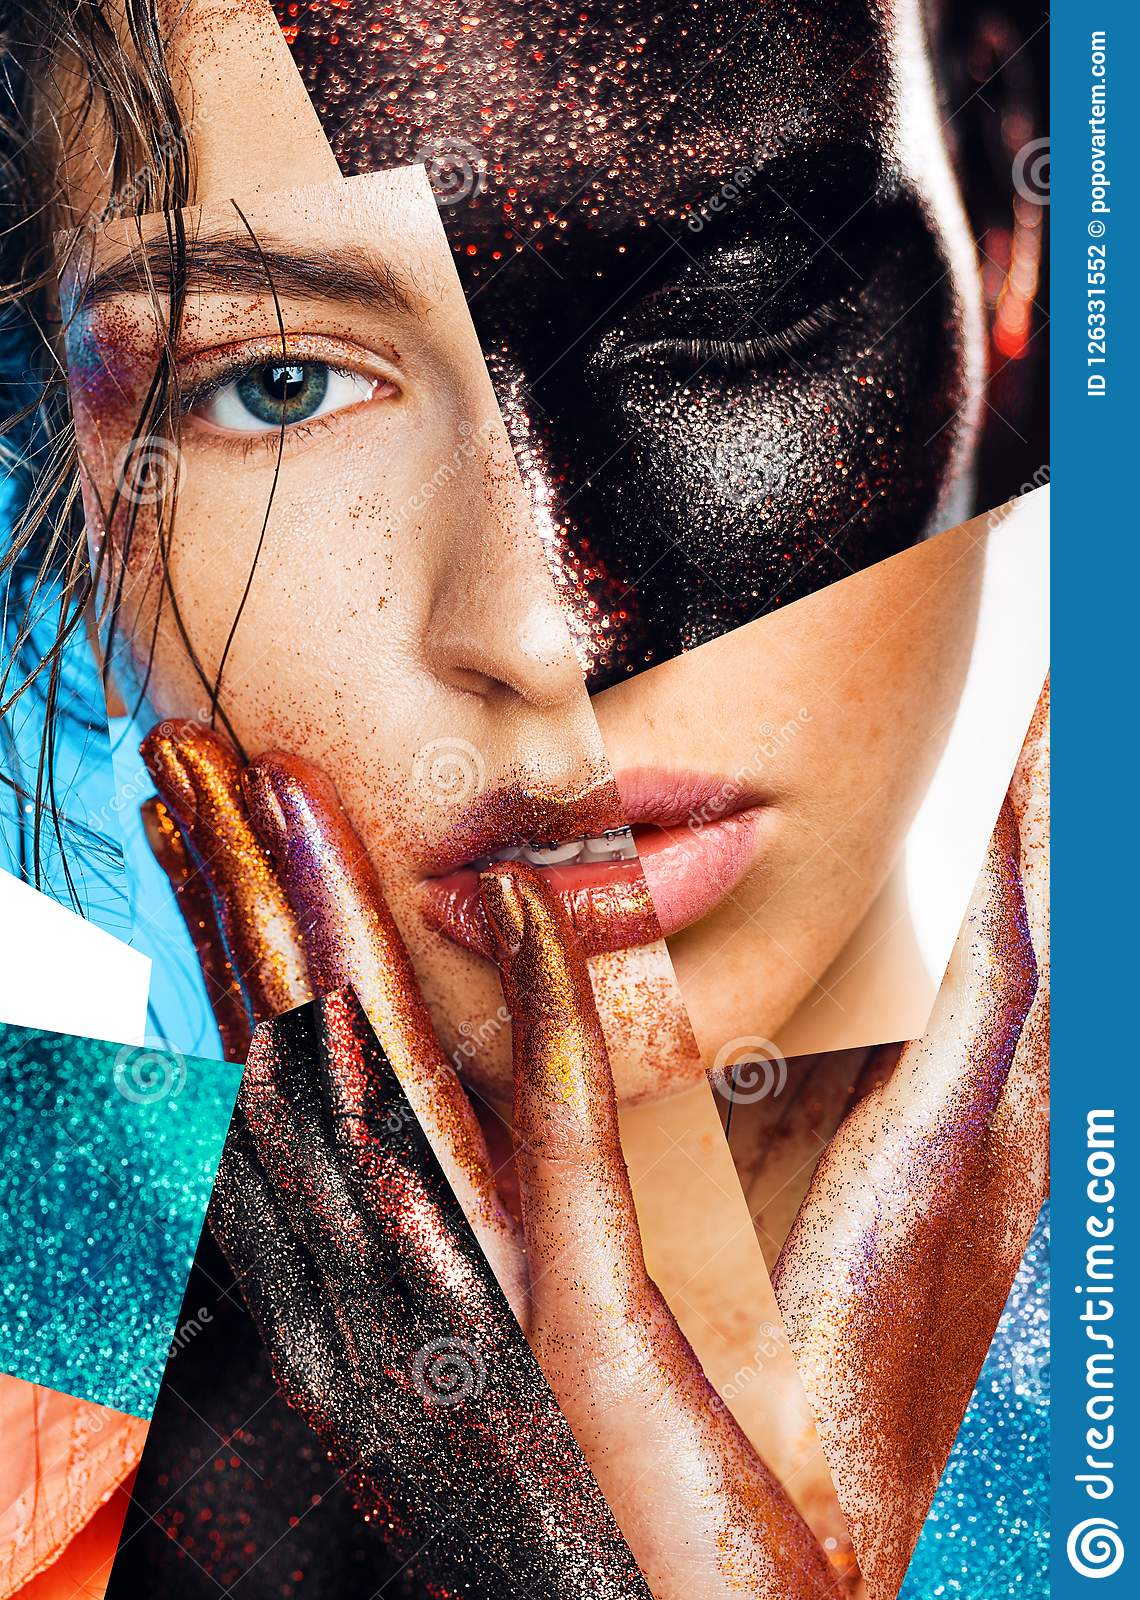 Composition Of Women Portraits With Glitters On Face And Hands Stock Photo Image Of Imagination Model 126331552